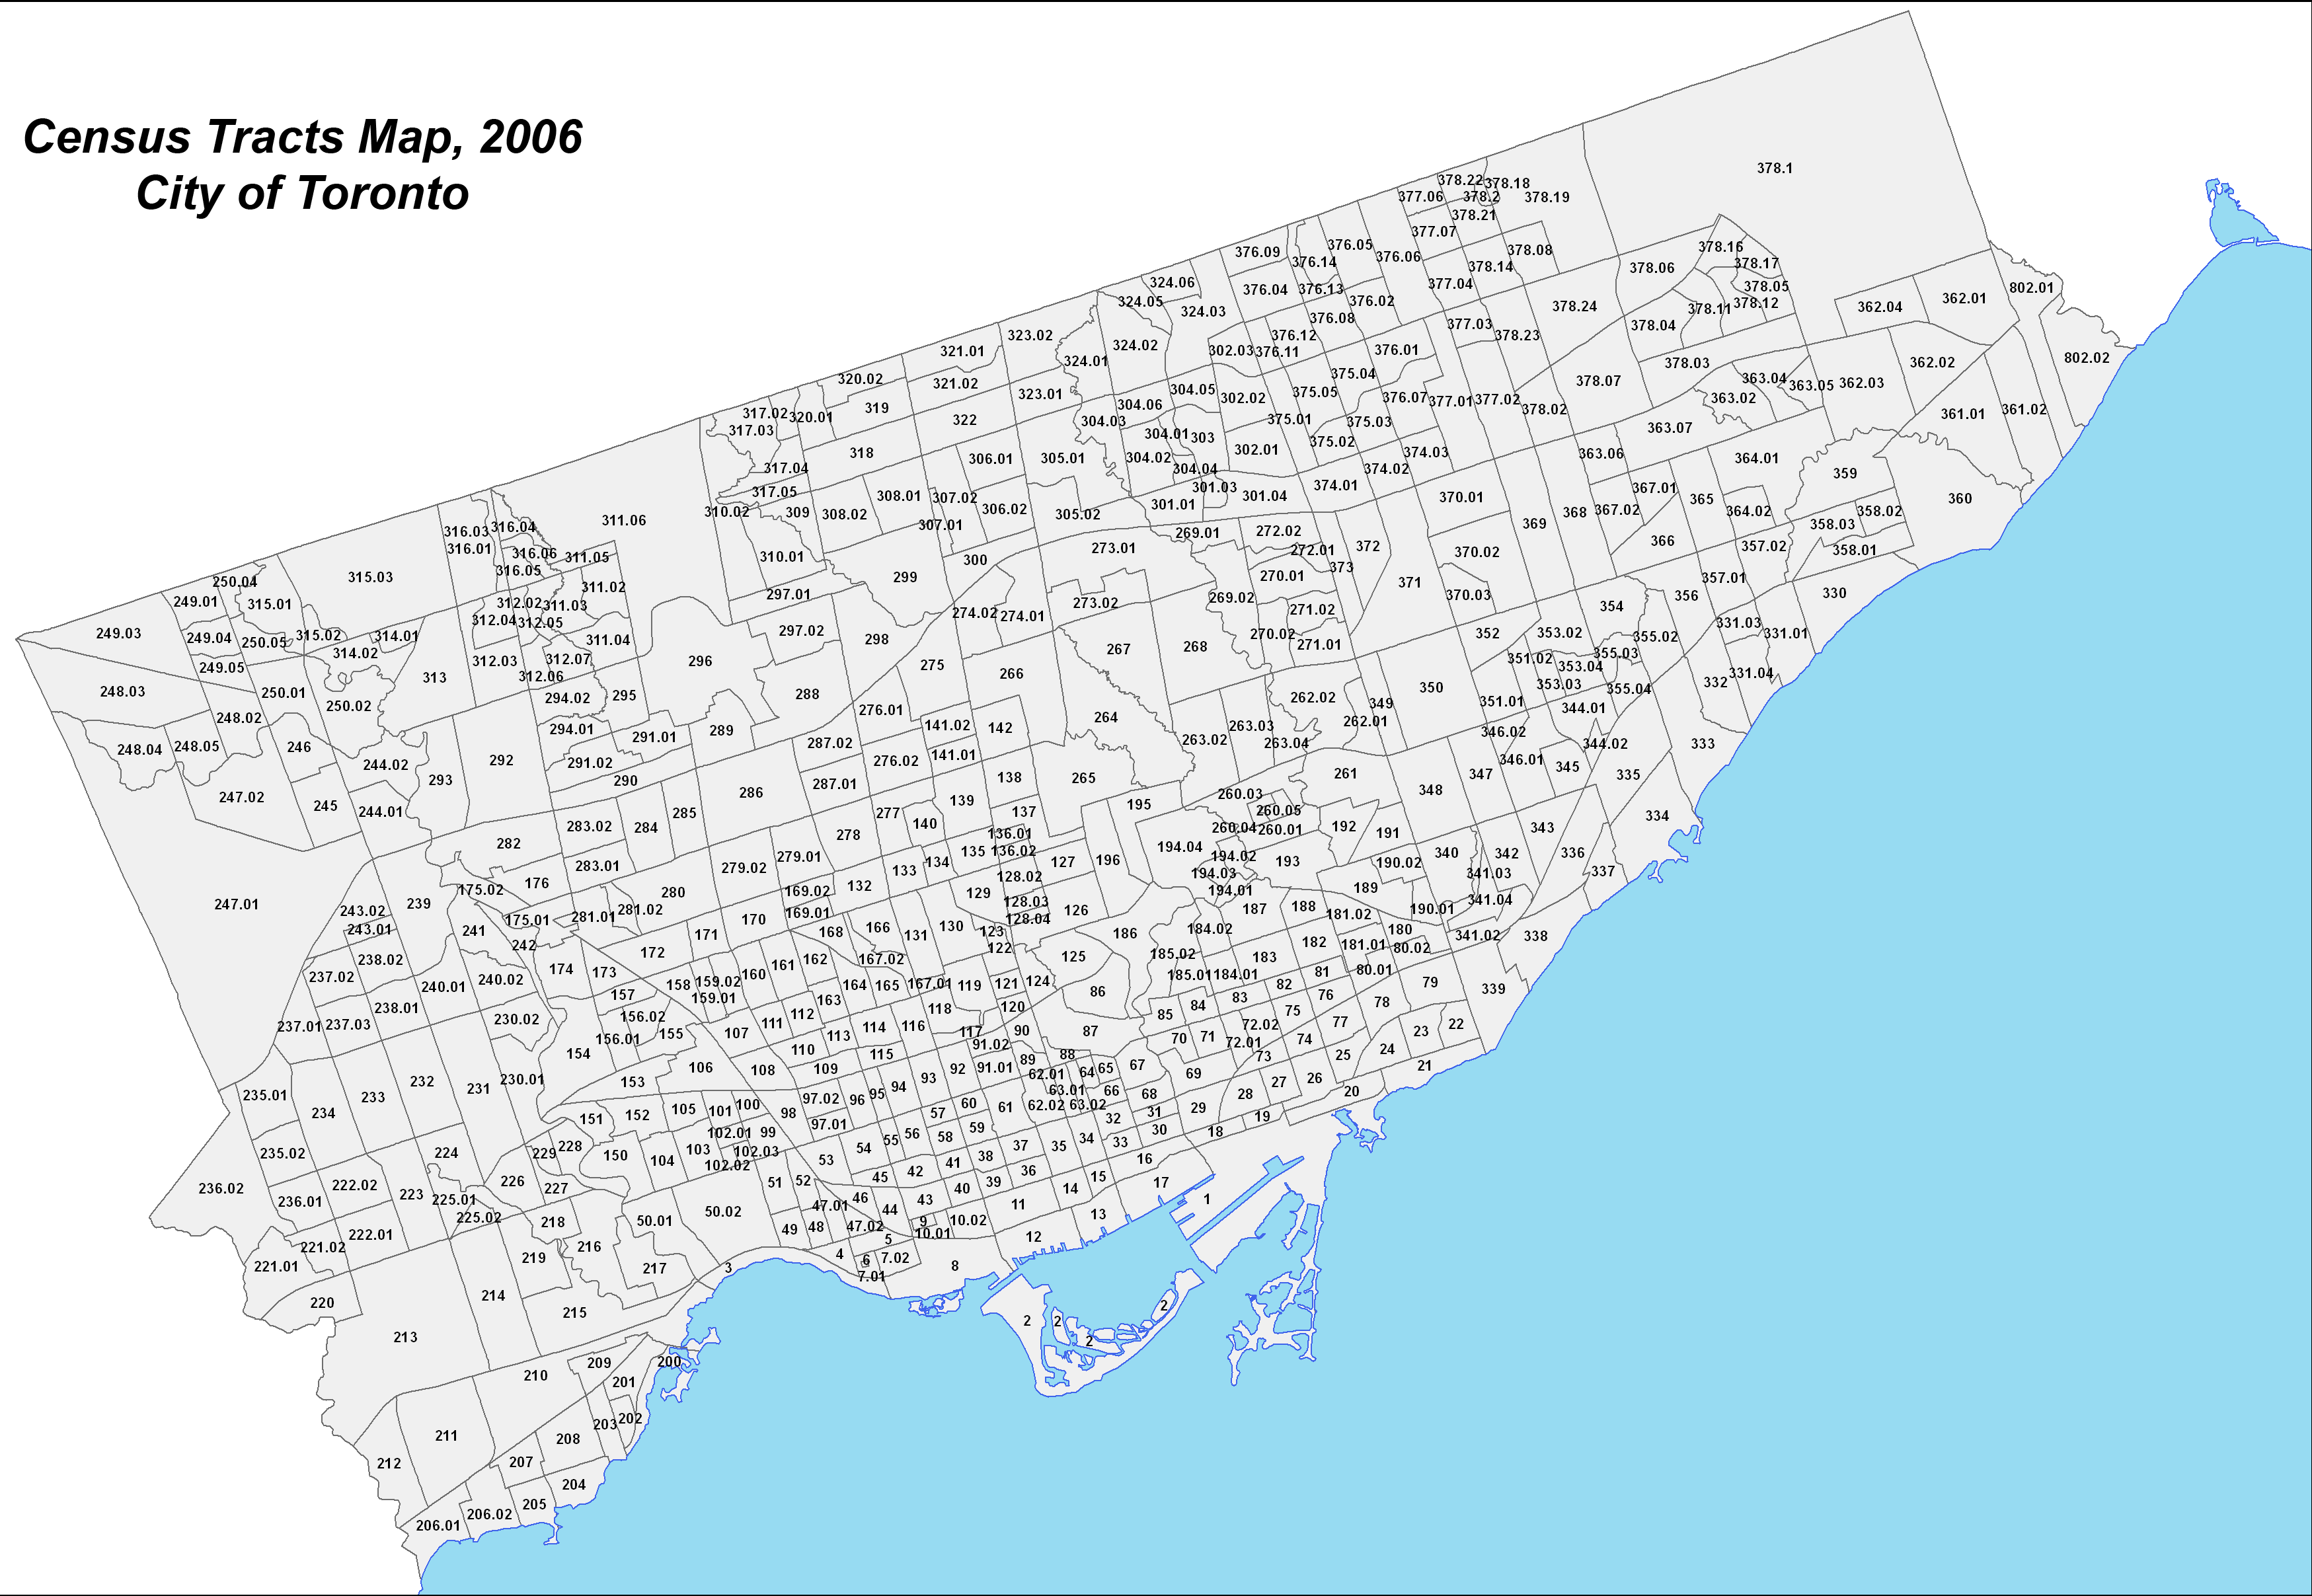 City of Toronto (2006) Census Tracts Map-PNG image